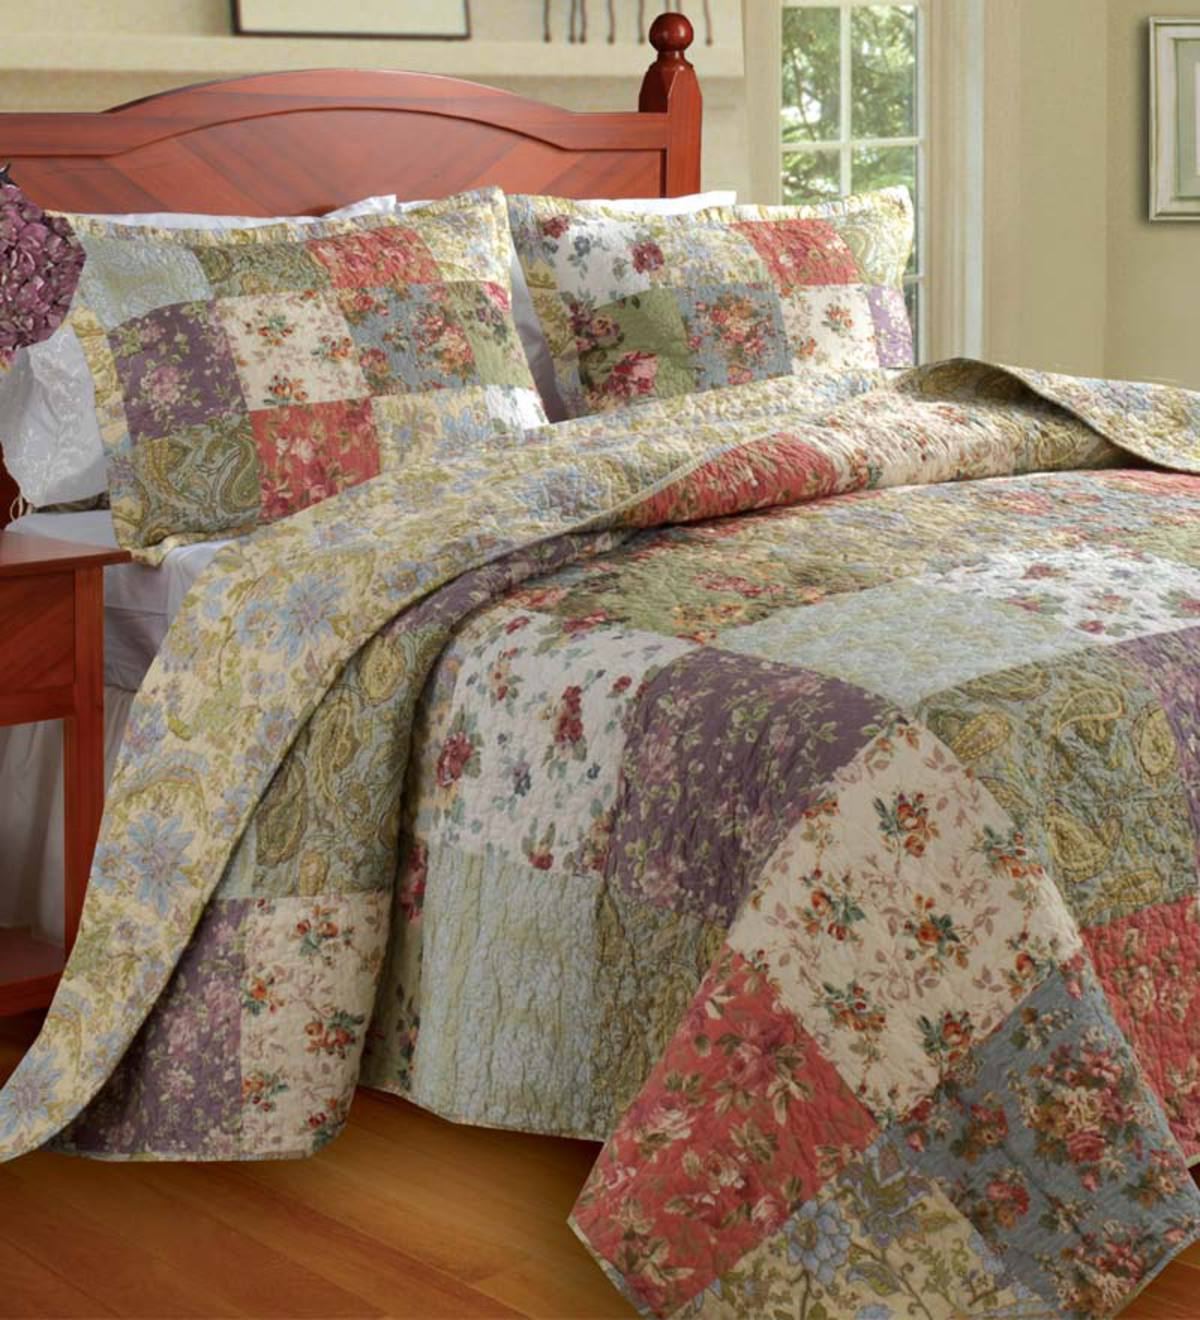 Queen 100% Cotton Wildflower Patchwork Block Reversible Bedspread And Shams